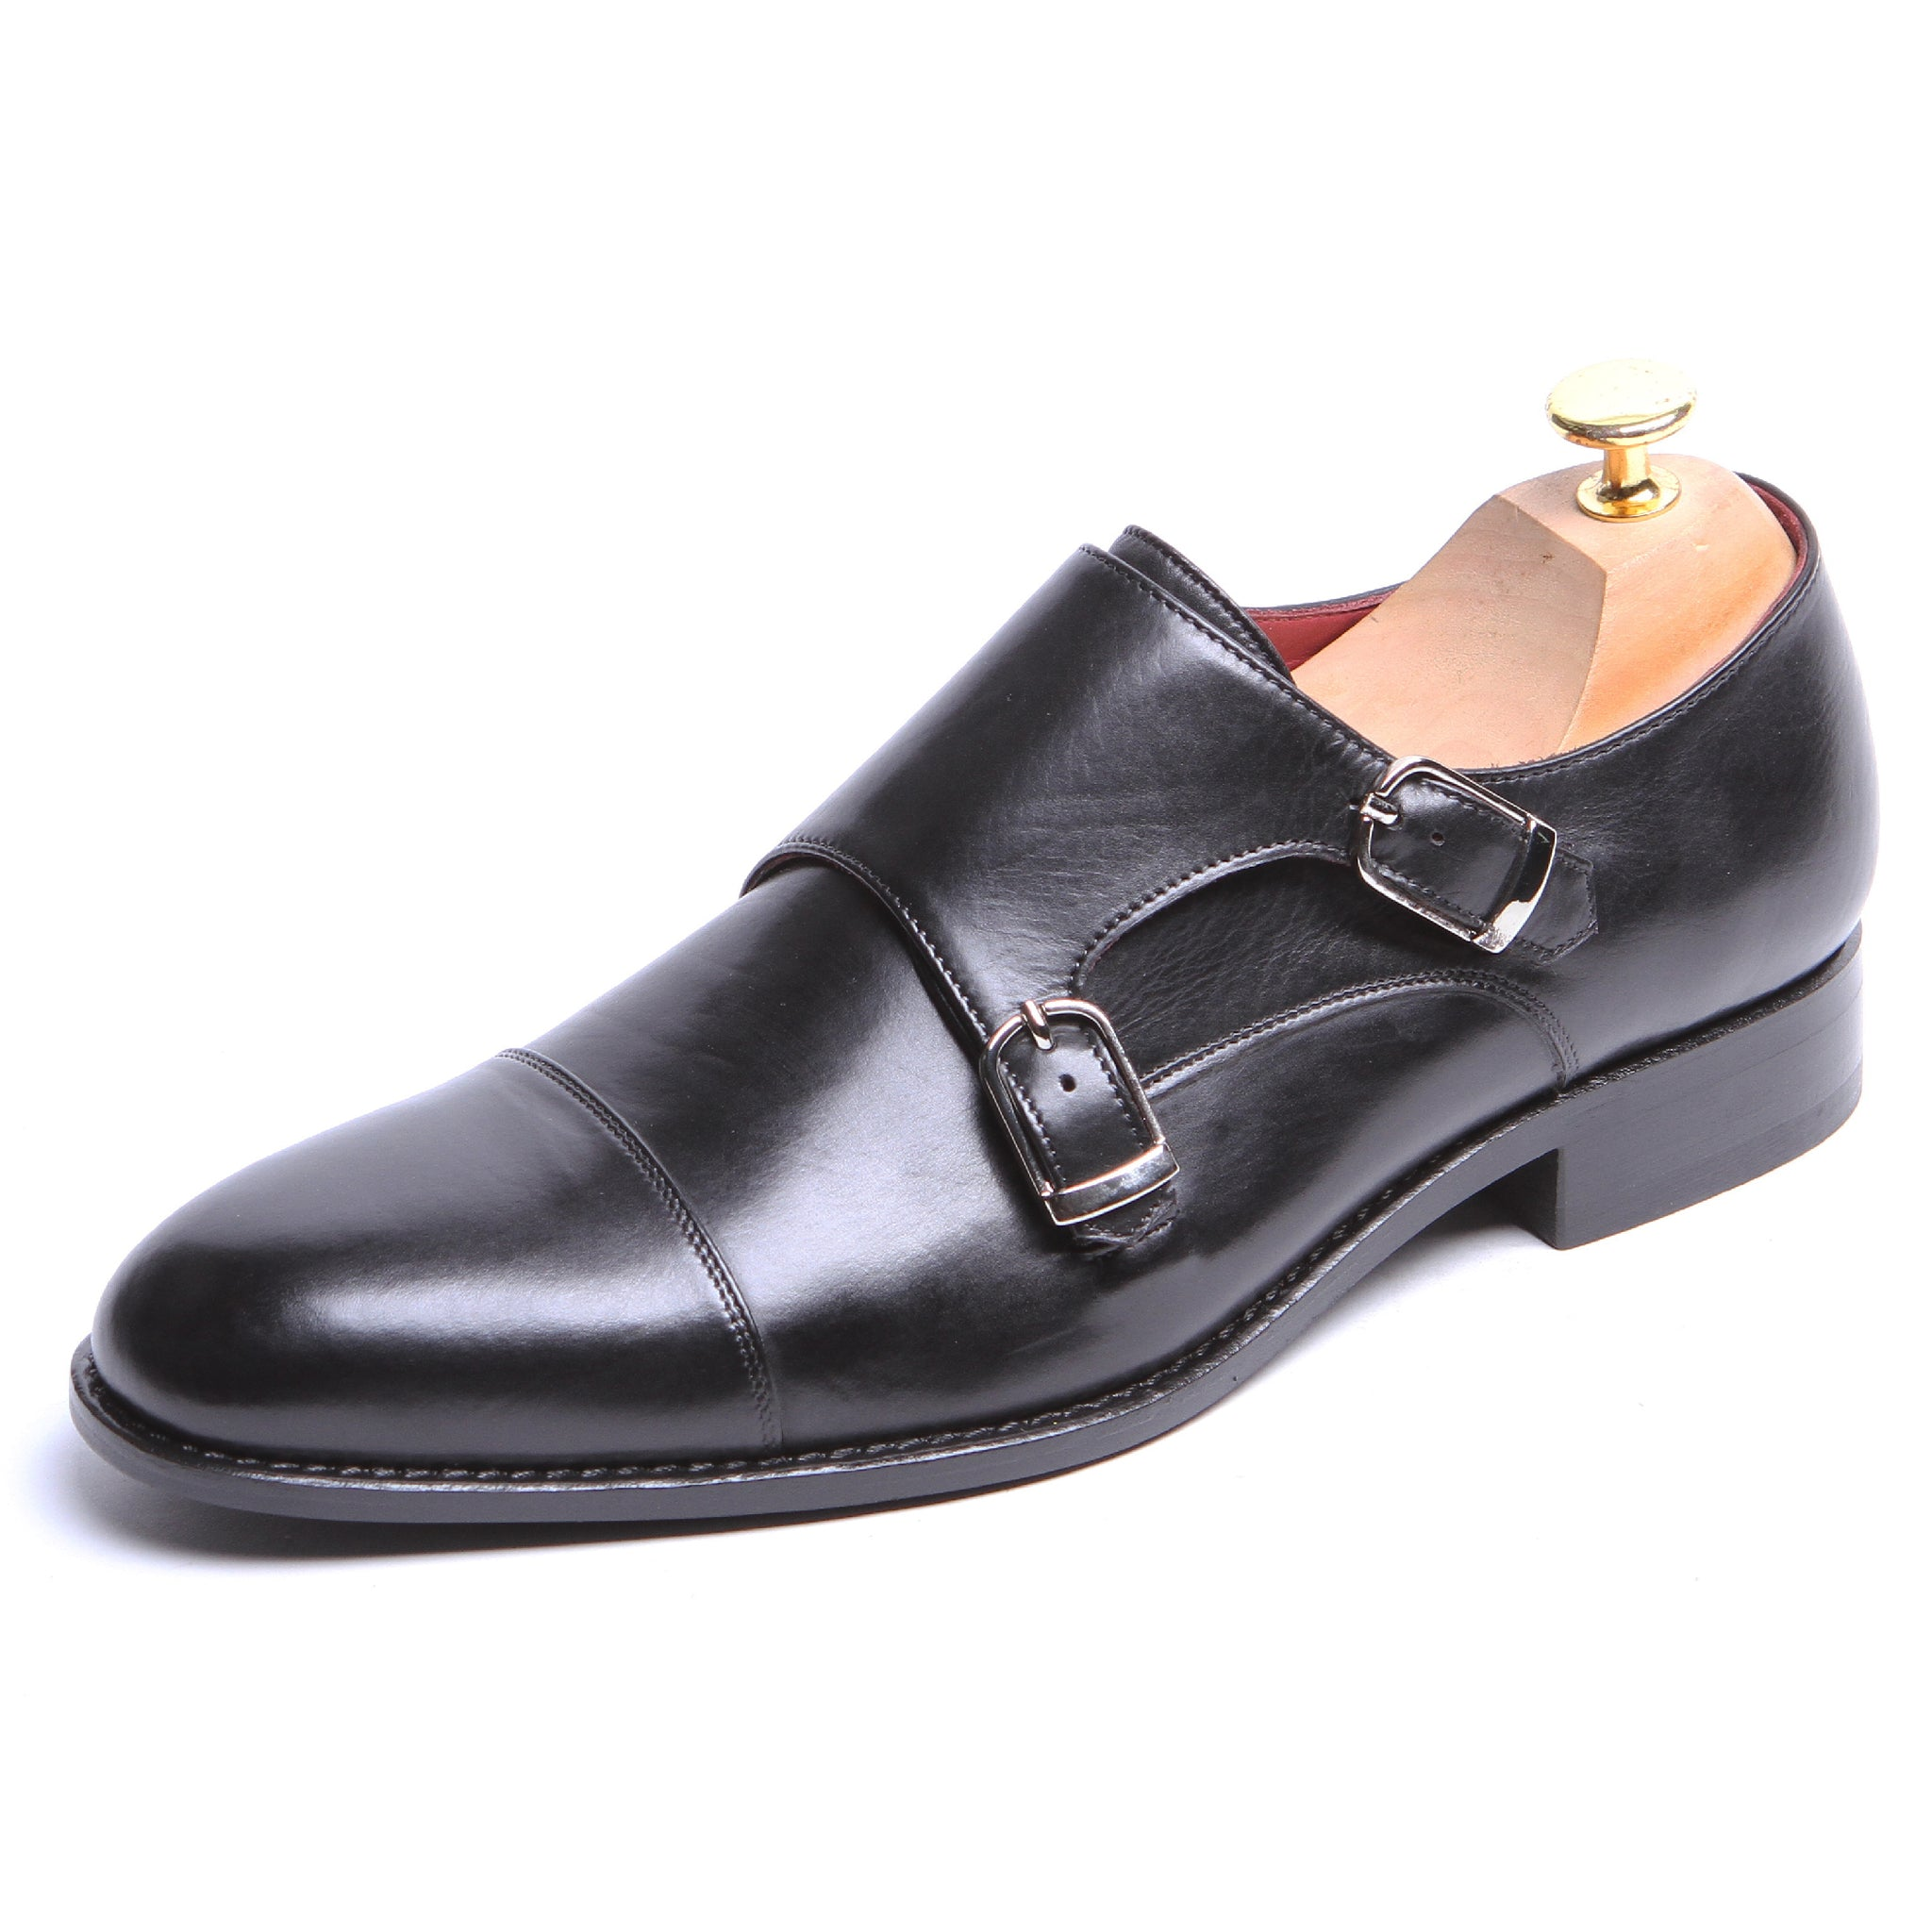 d92c5596b8225 Masterpiece Double Monk Strap - Black